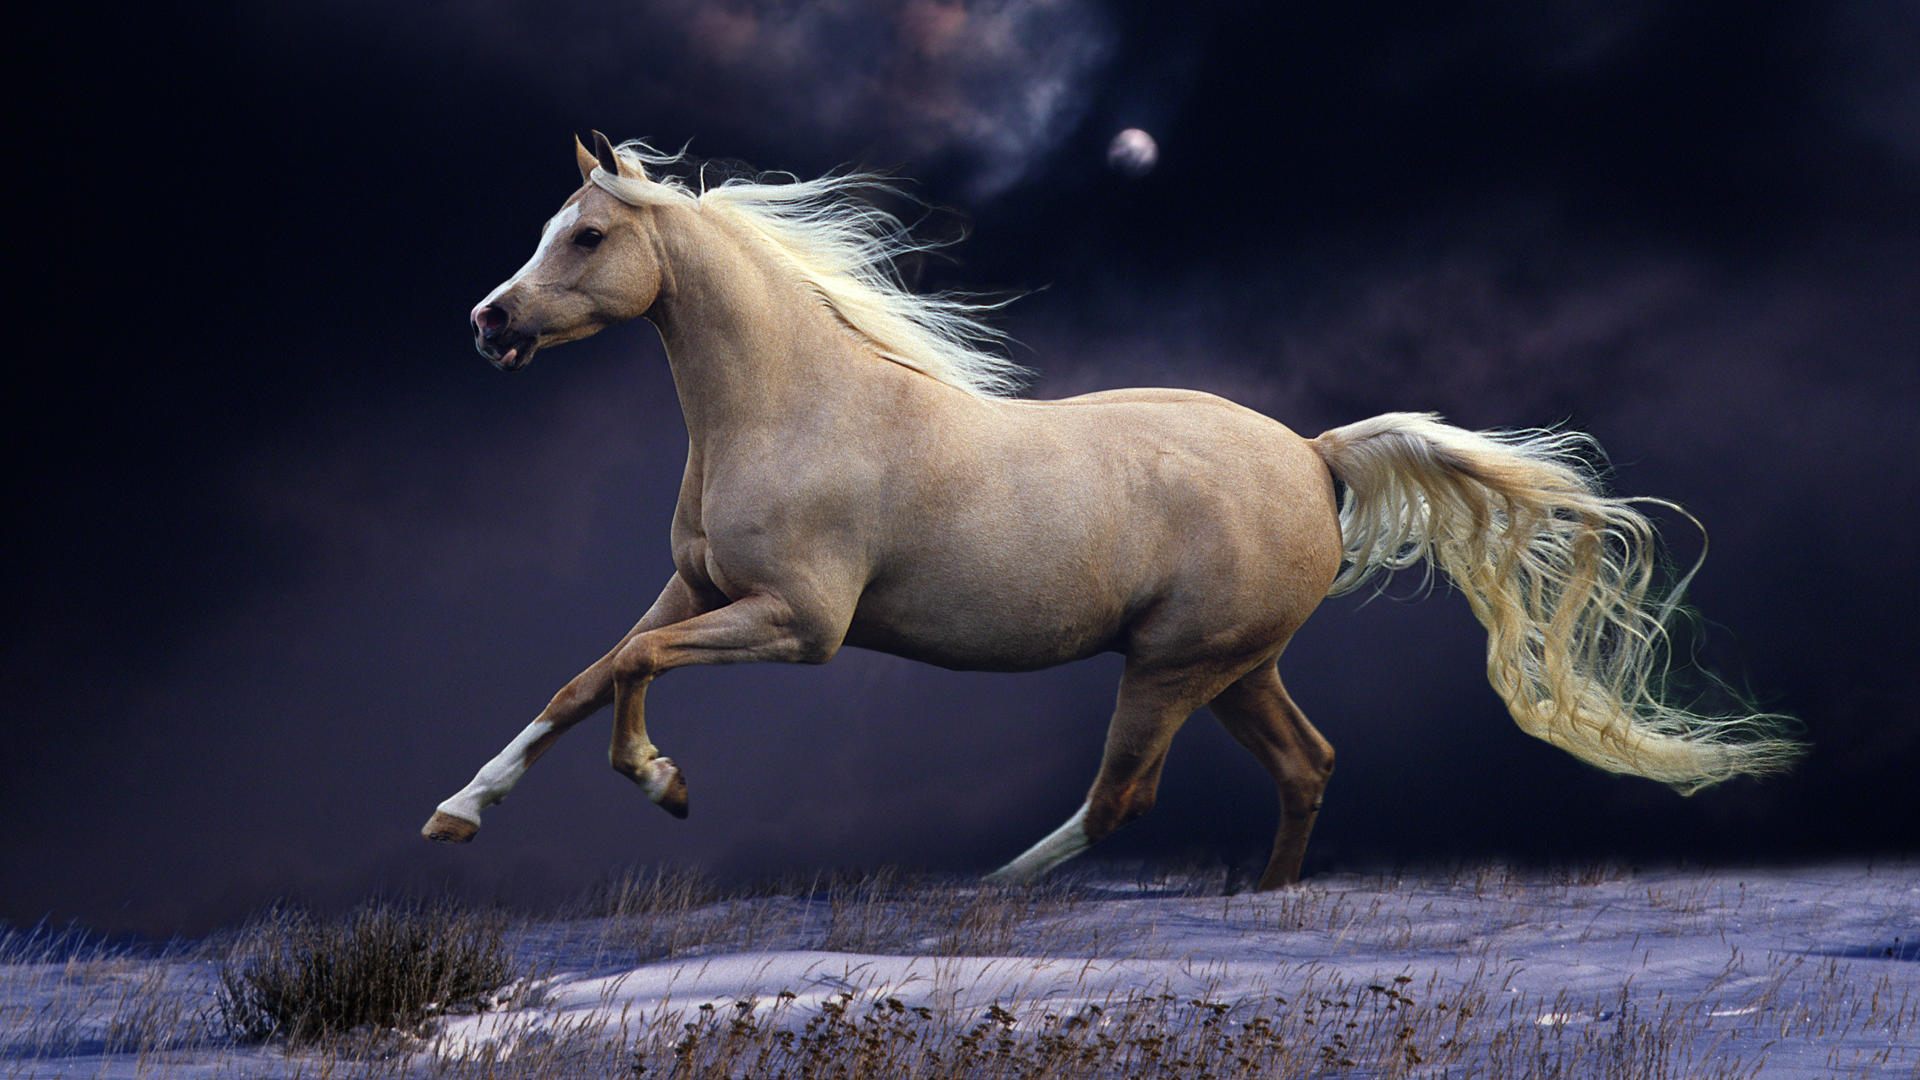 Horse wallpapers free download latest pets animals hd desktop horse wallpapers free download latest pets animals hd desktop images 1920x1080 voltagebd Choice Image